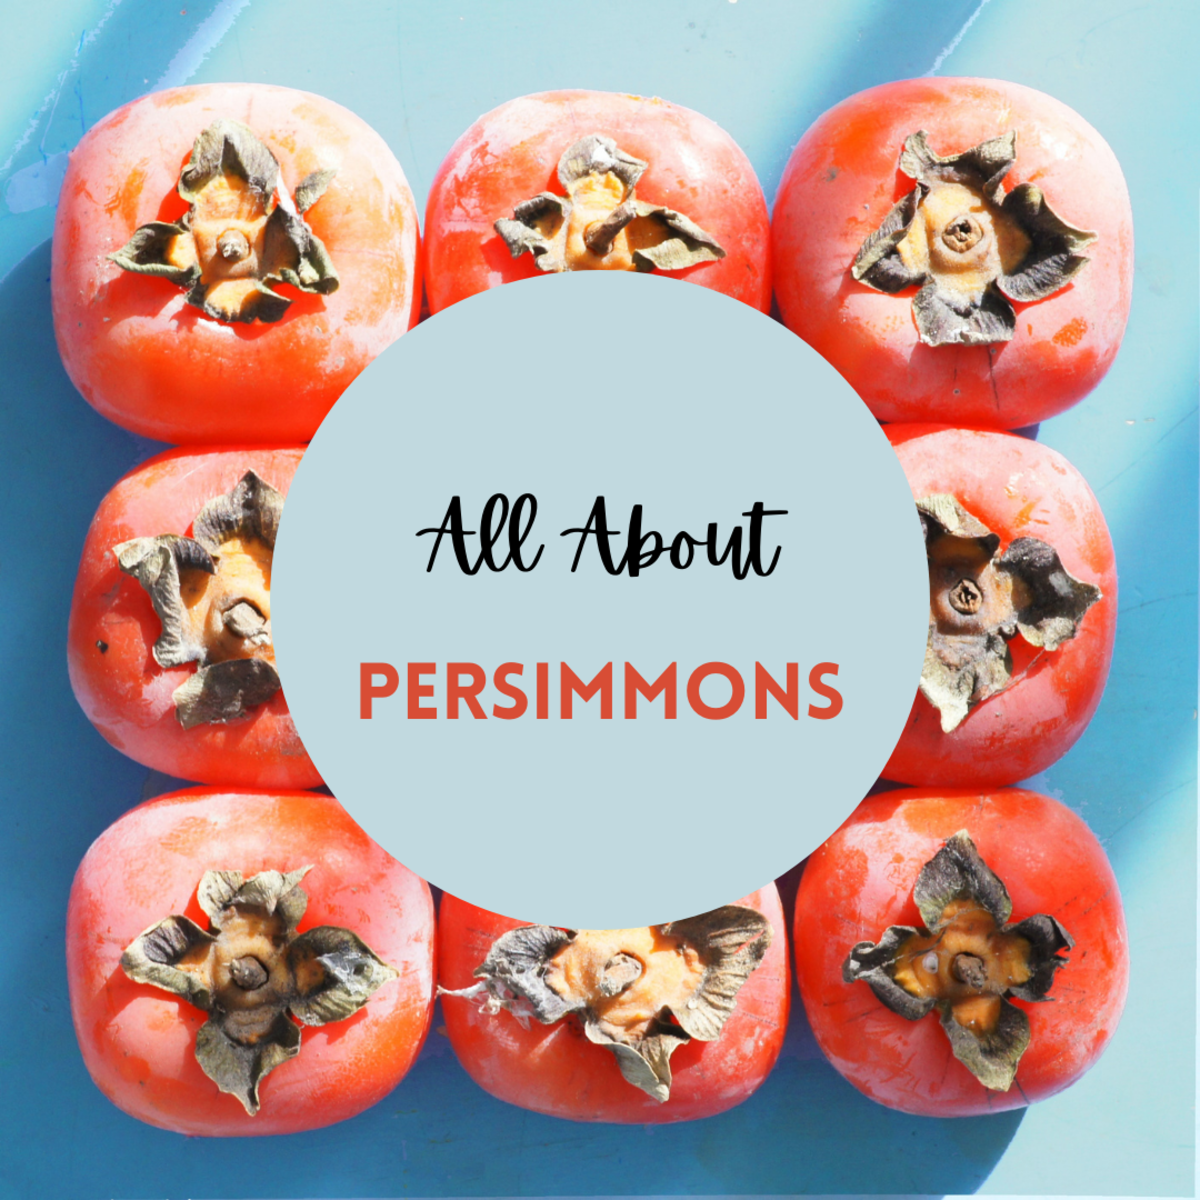 When not completely ripe, persimmons can have a strange mouthfeel.